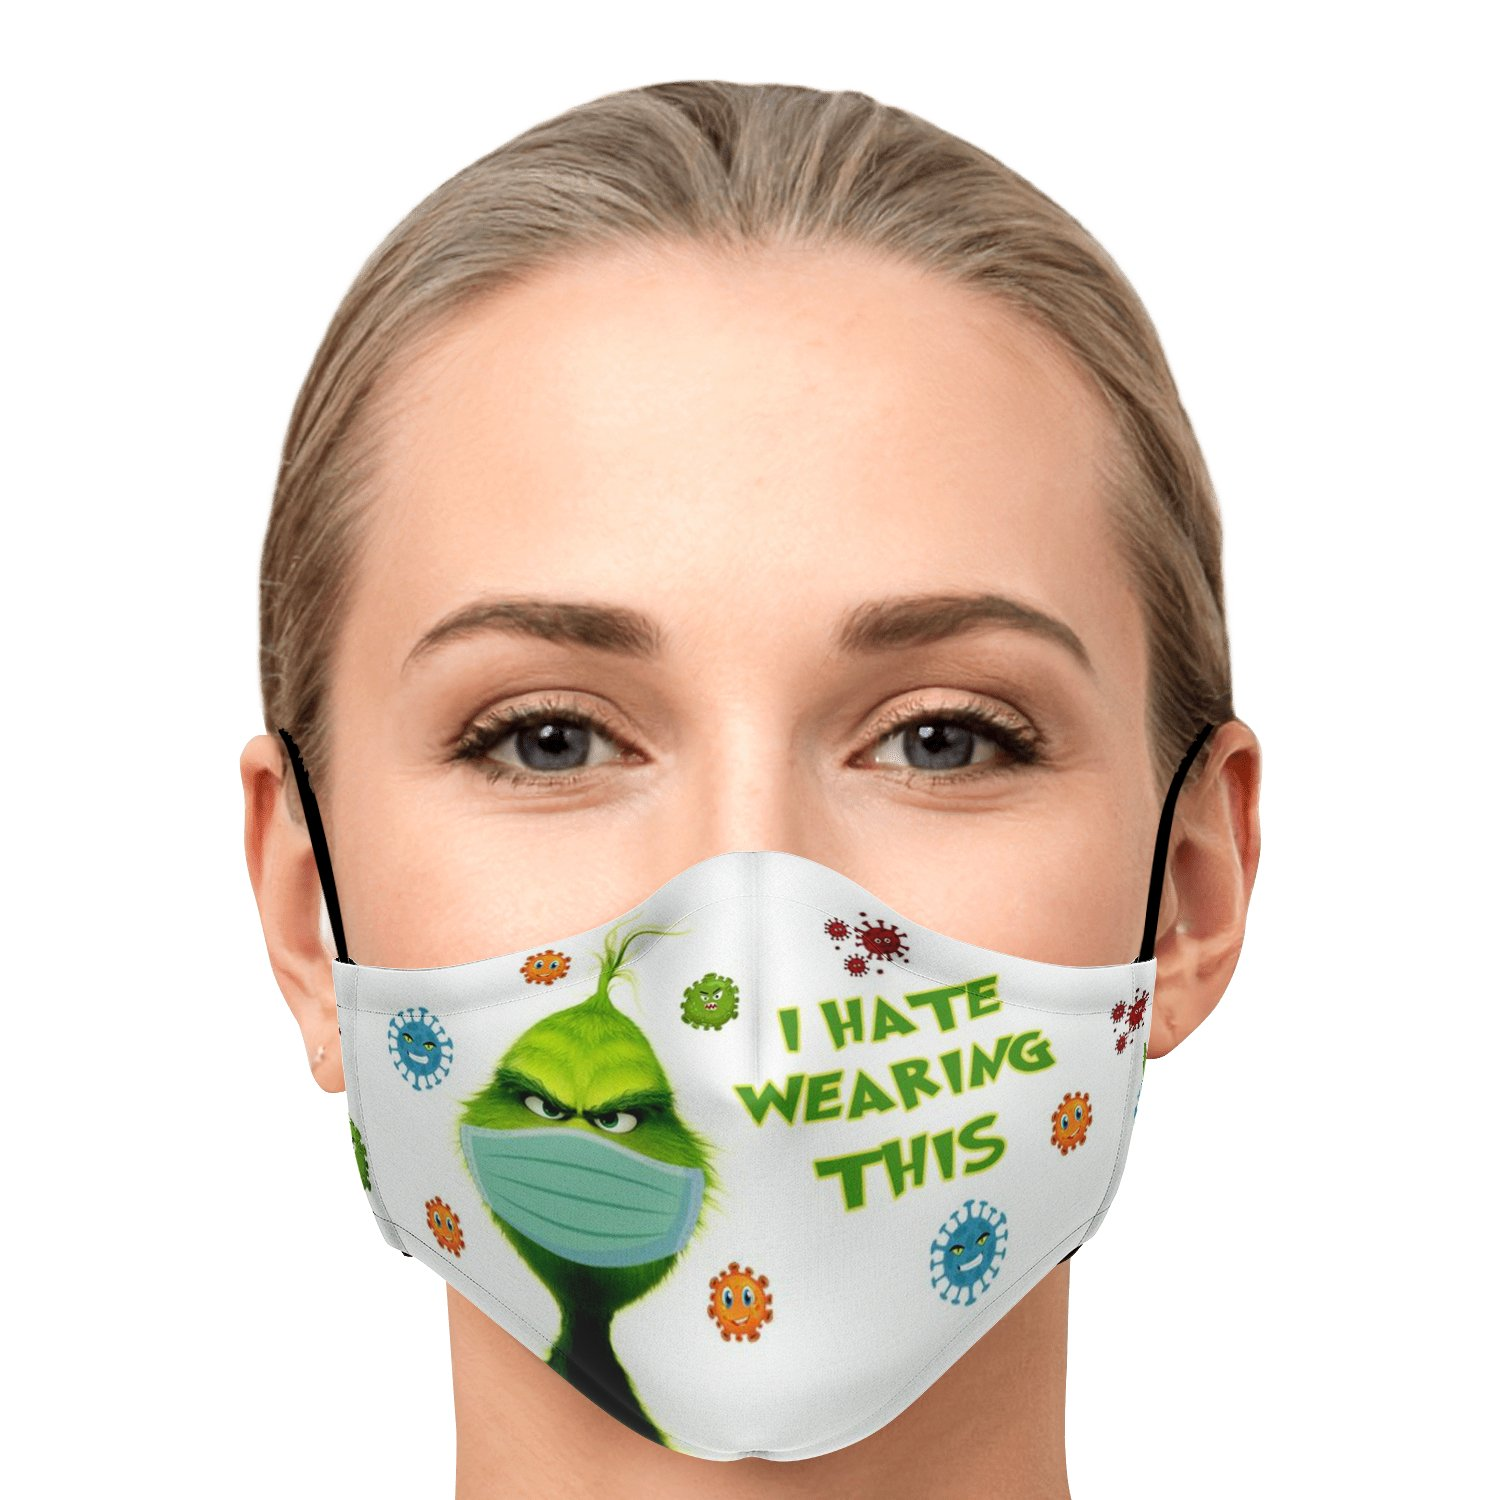 The Grinch I Hate Wearing This Face Mask 1